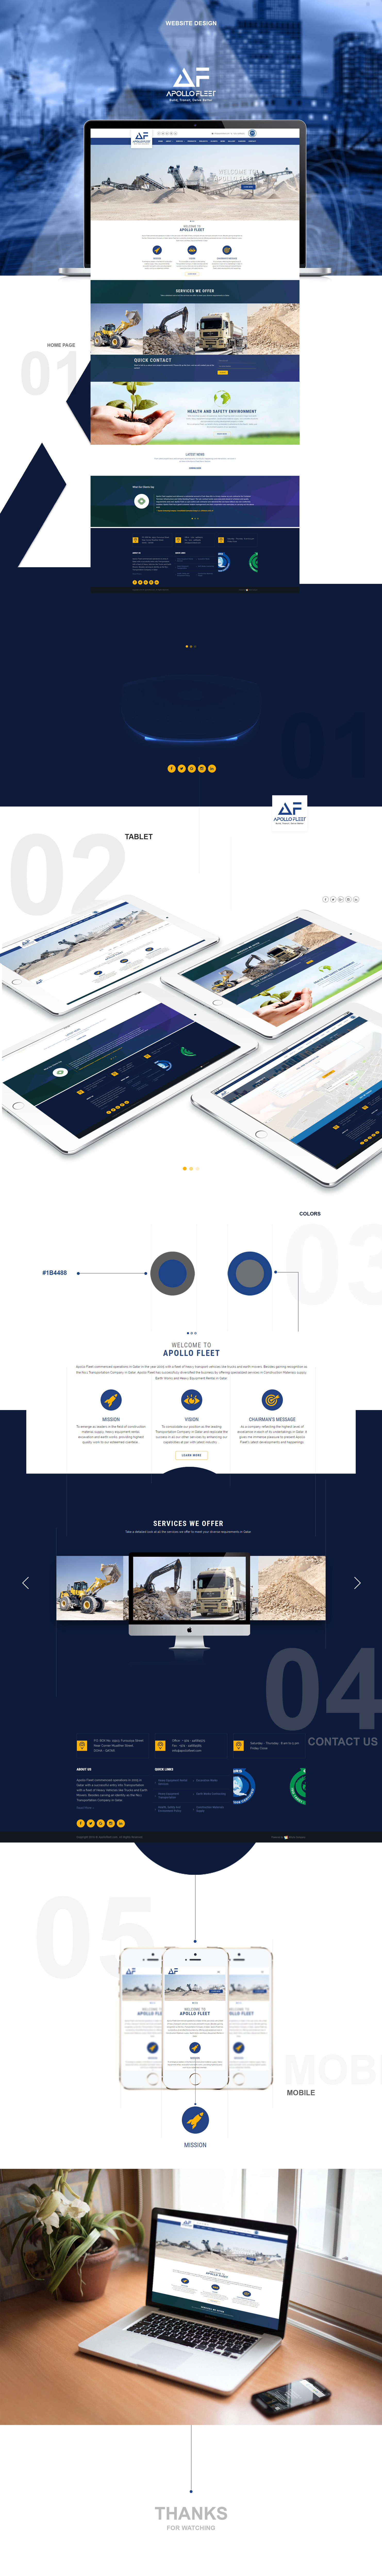 Apollofleet website design and development by Whyte Company